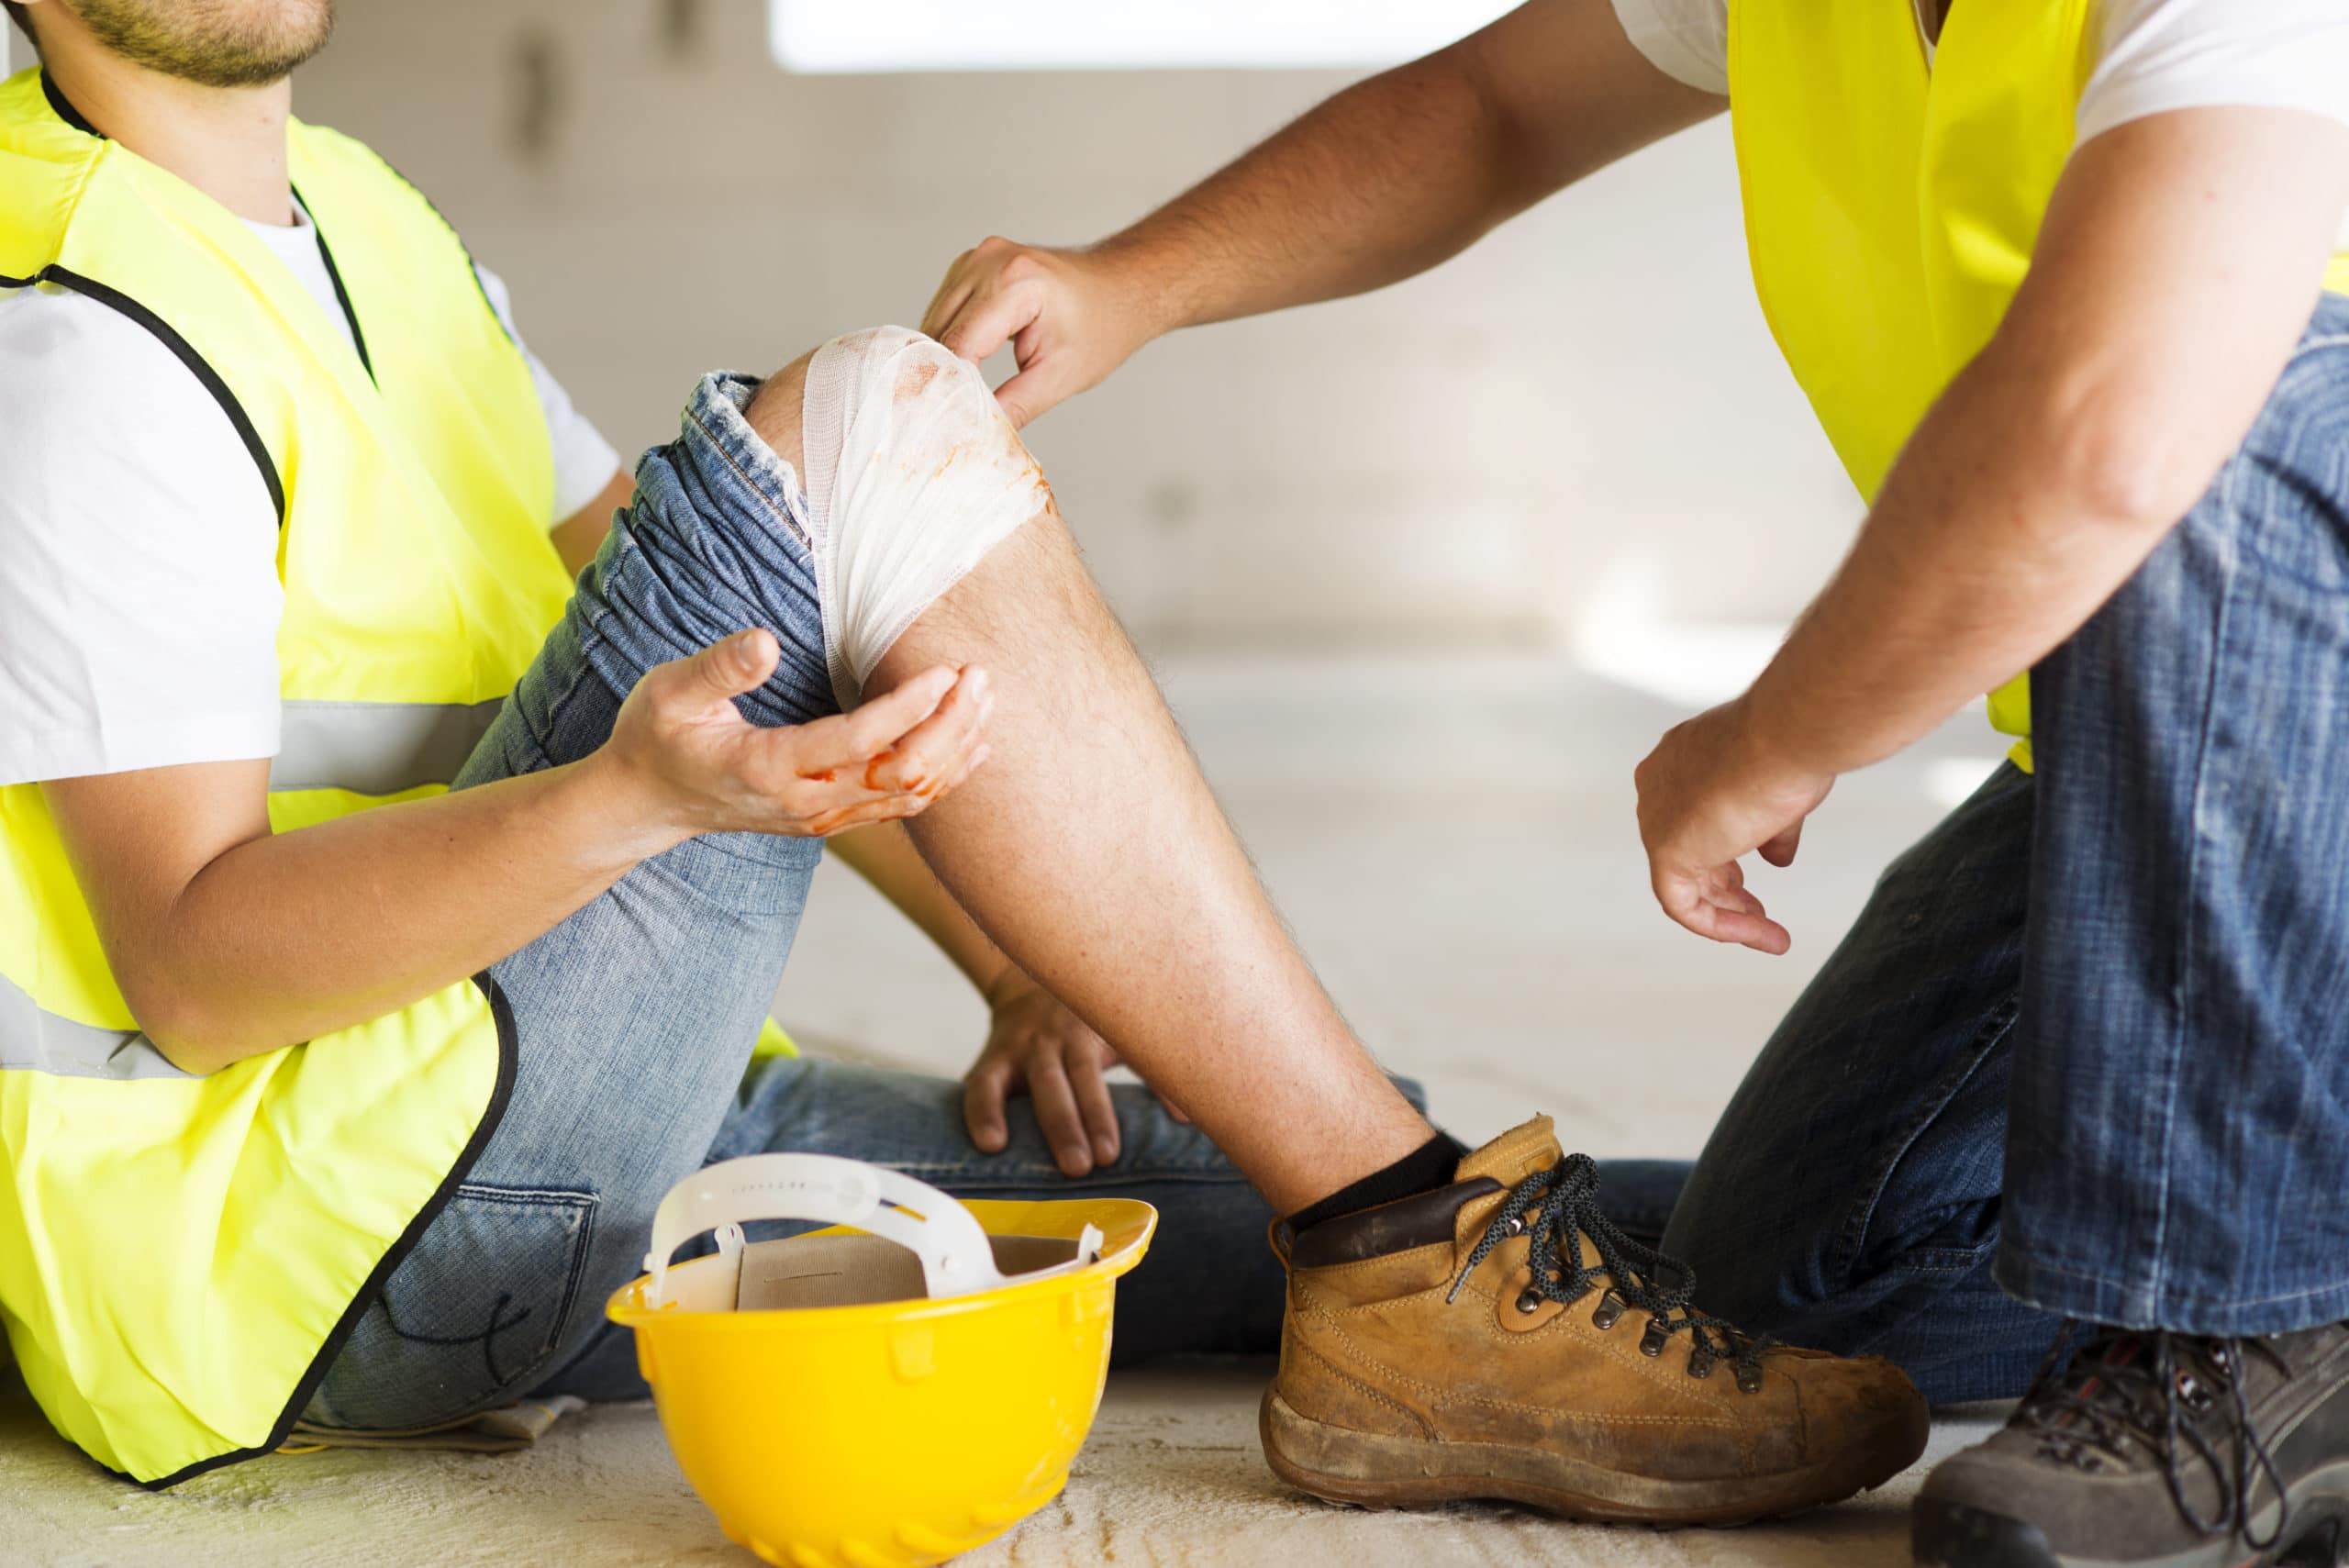 Workers Comp Injury Attorney